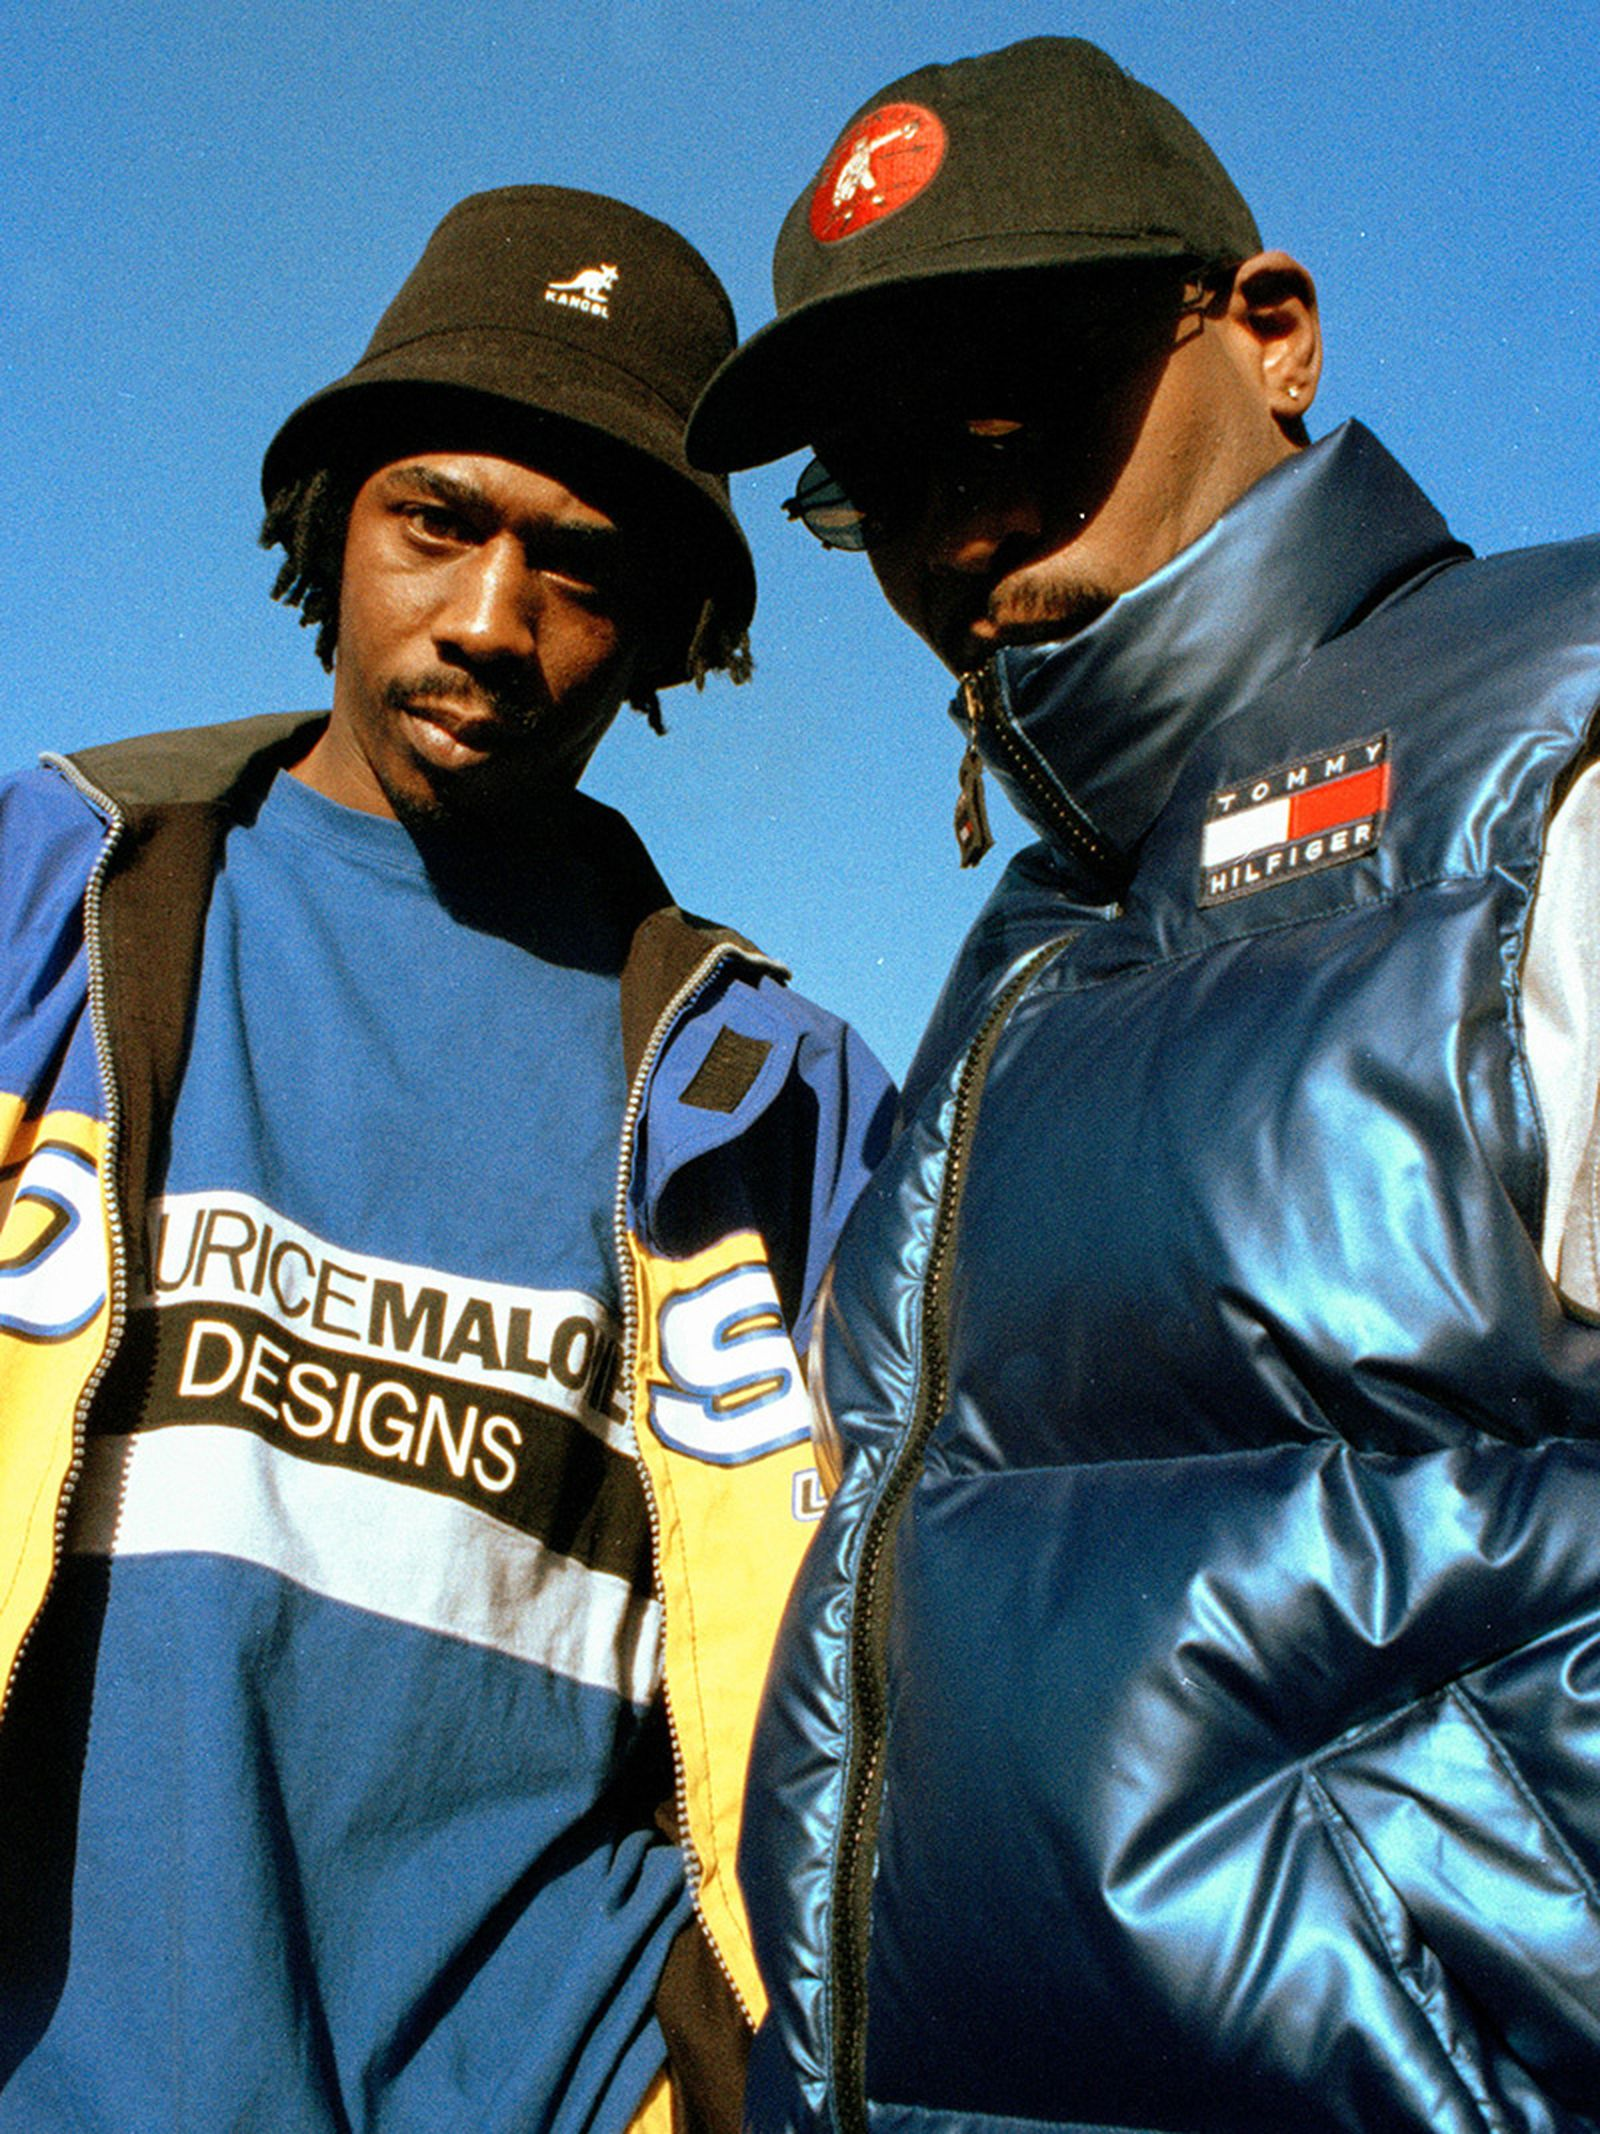 Bryan Gee and Jumpin Jack Frost, Brixton, 1996